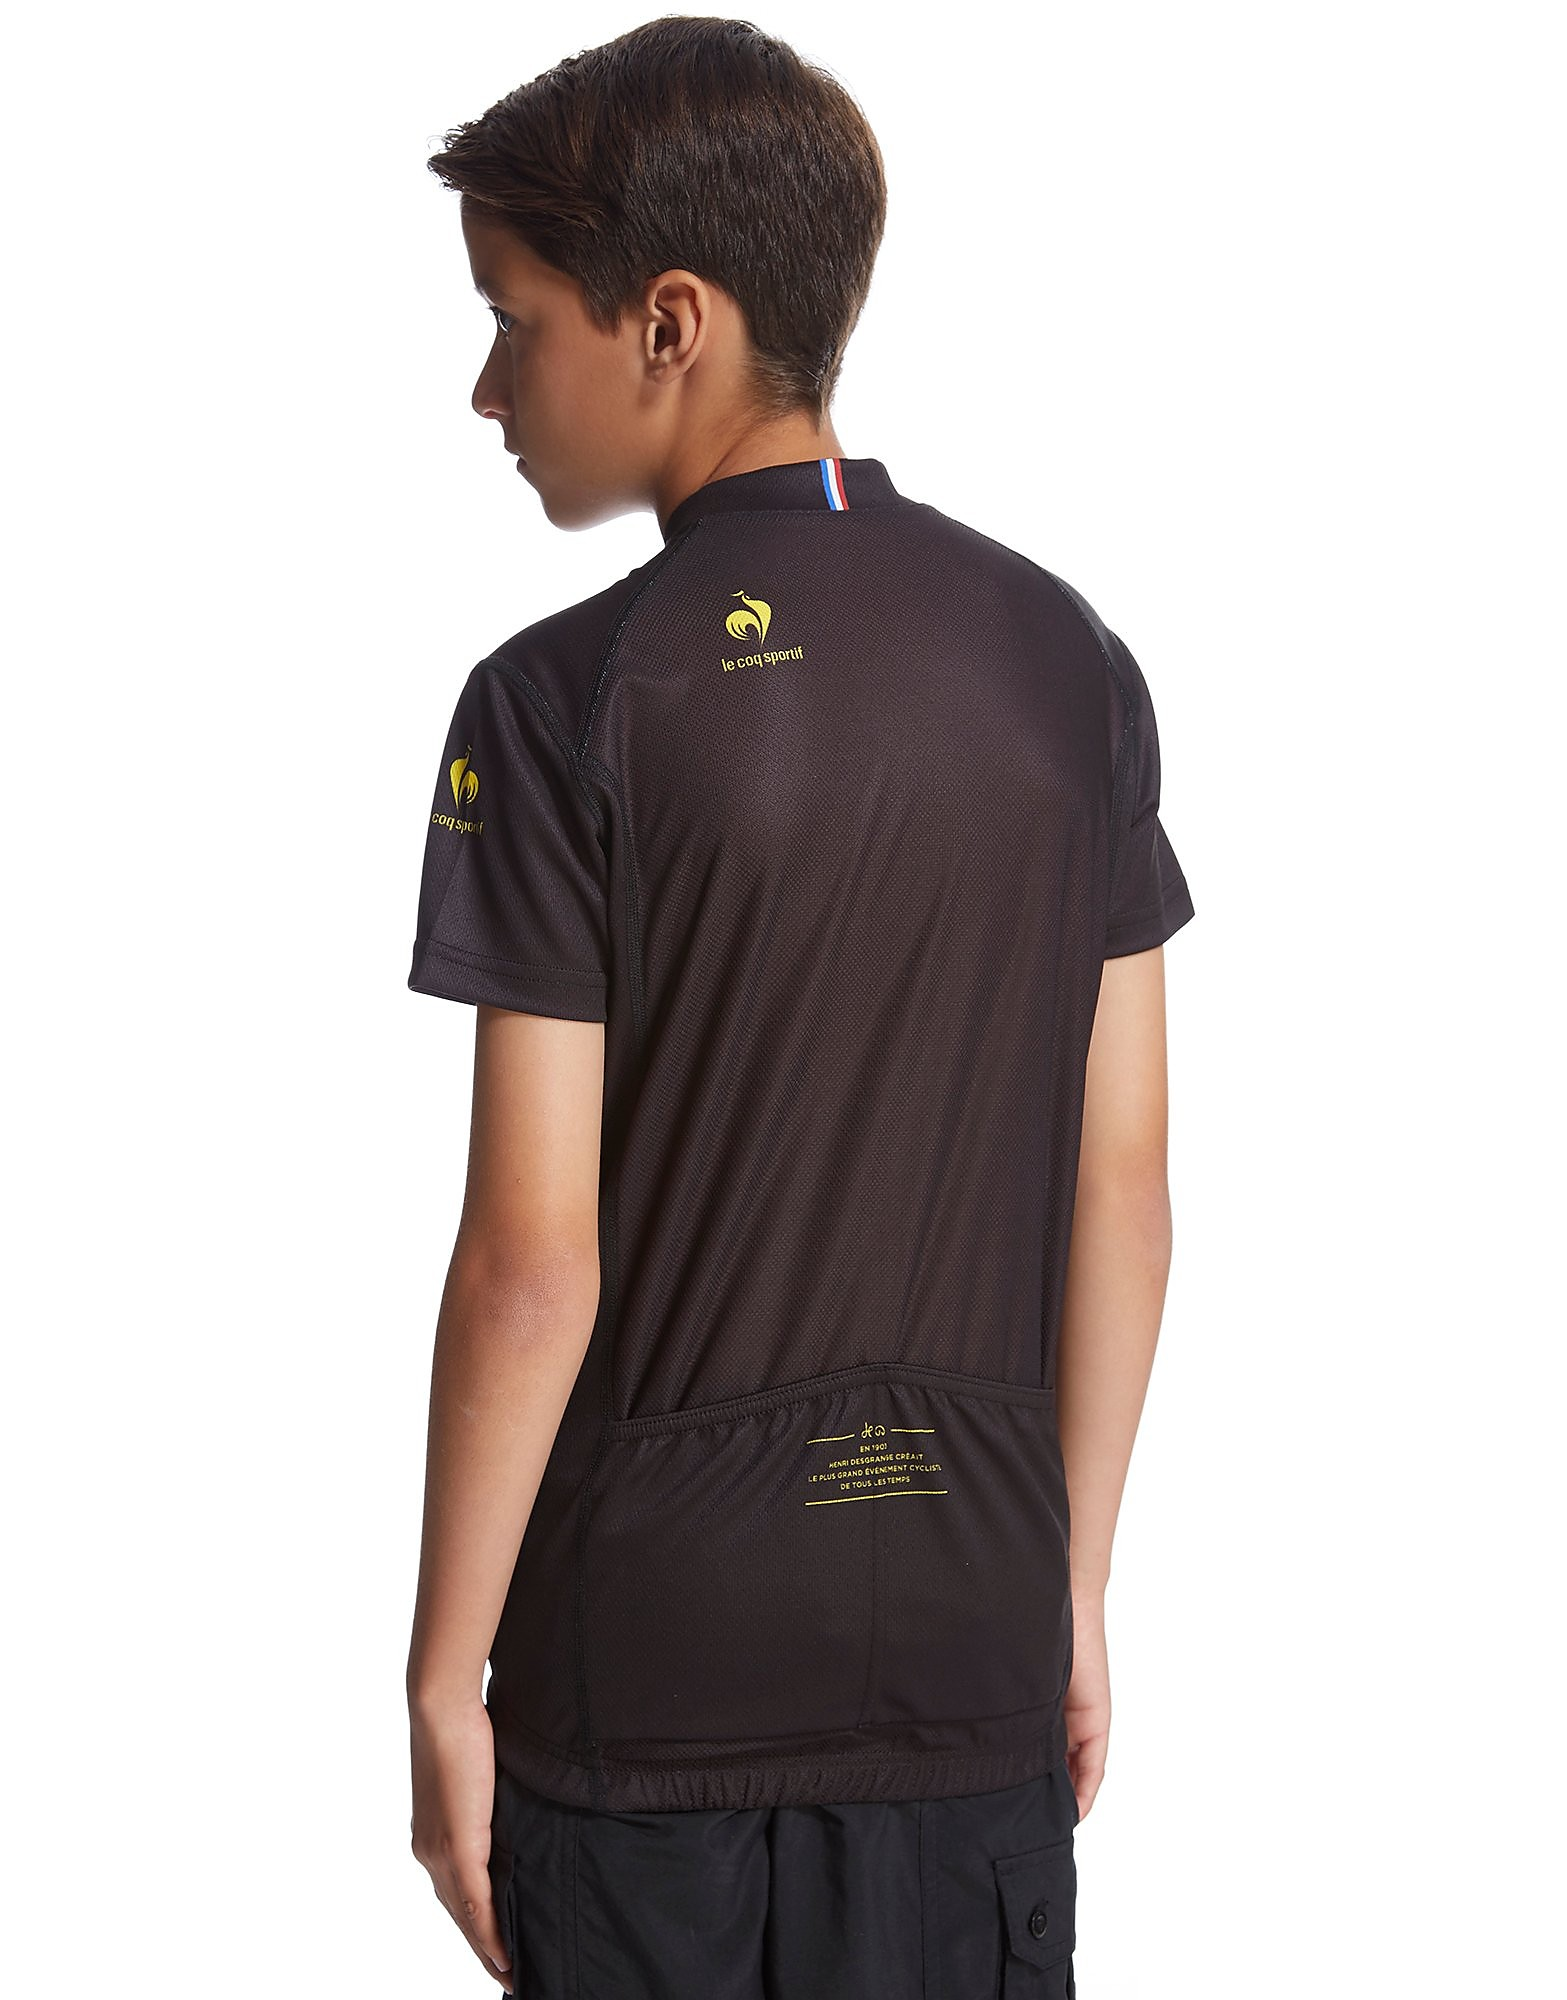 Le Coq Sportif Dedicated 2015 Jersey Junior